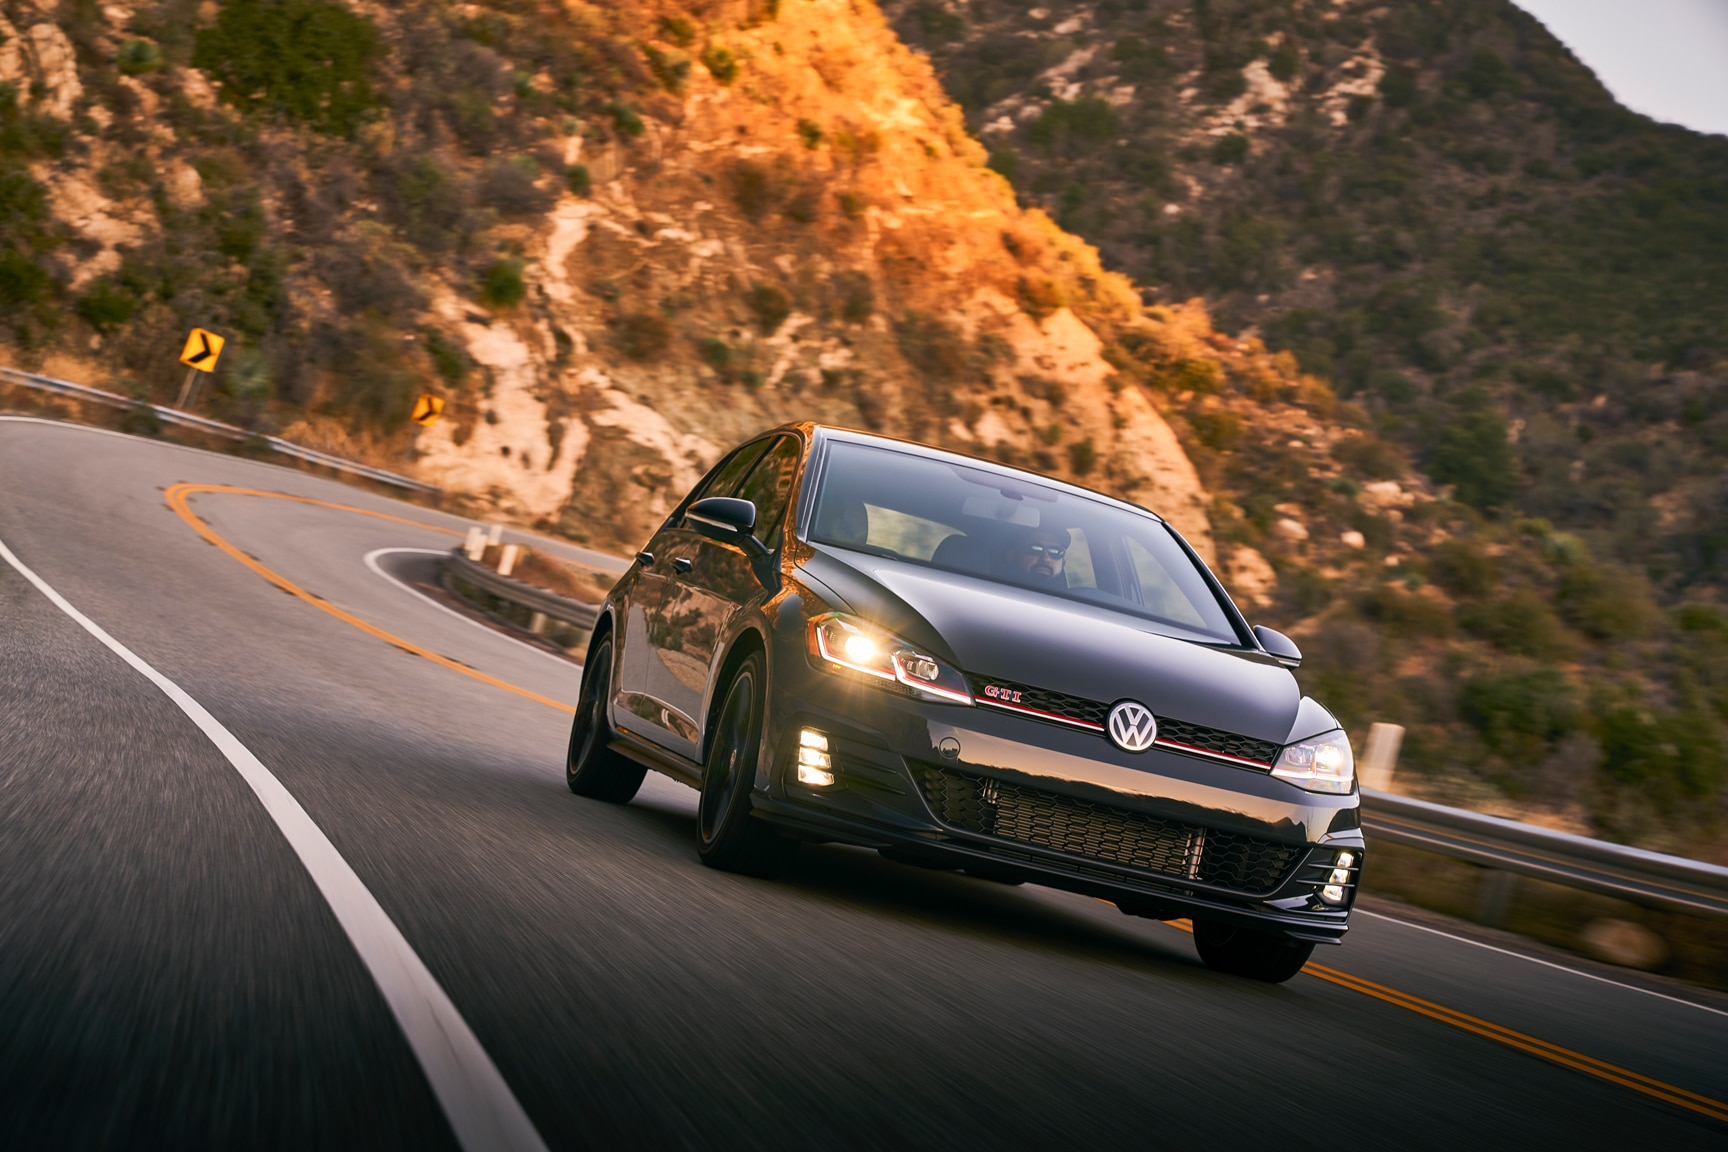 Vw Golf Gti Rabbit Edition Lap Video Pro Racer S Take Automobile